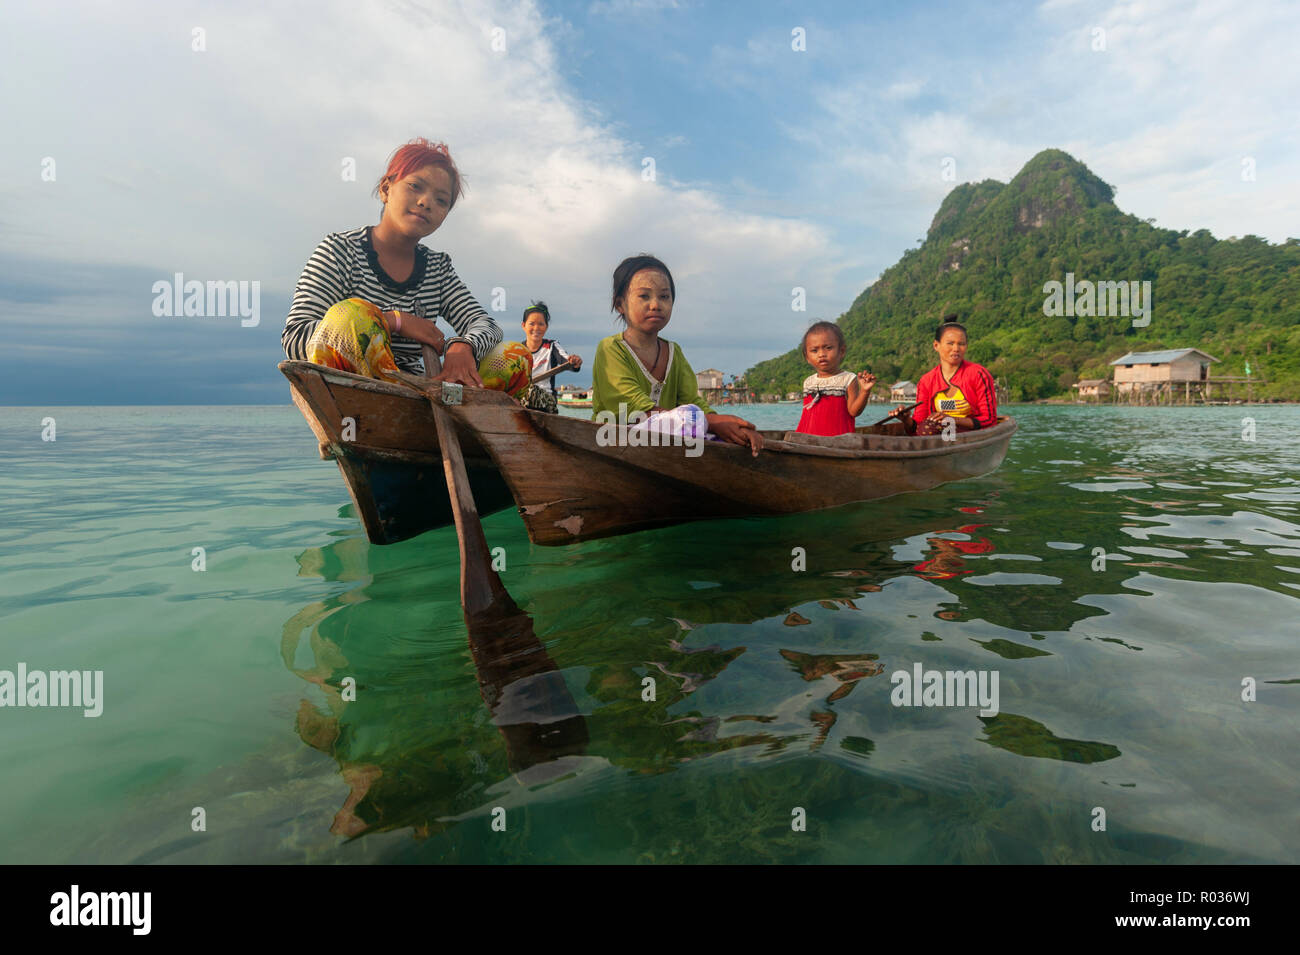 Semporna Sabah Malaysia - Sep 1, 2018 : Group of Sea Bajau ladies greeting visitors from their wooden boat. - Stock Image